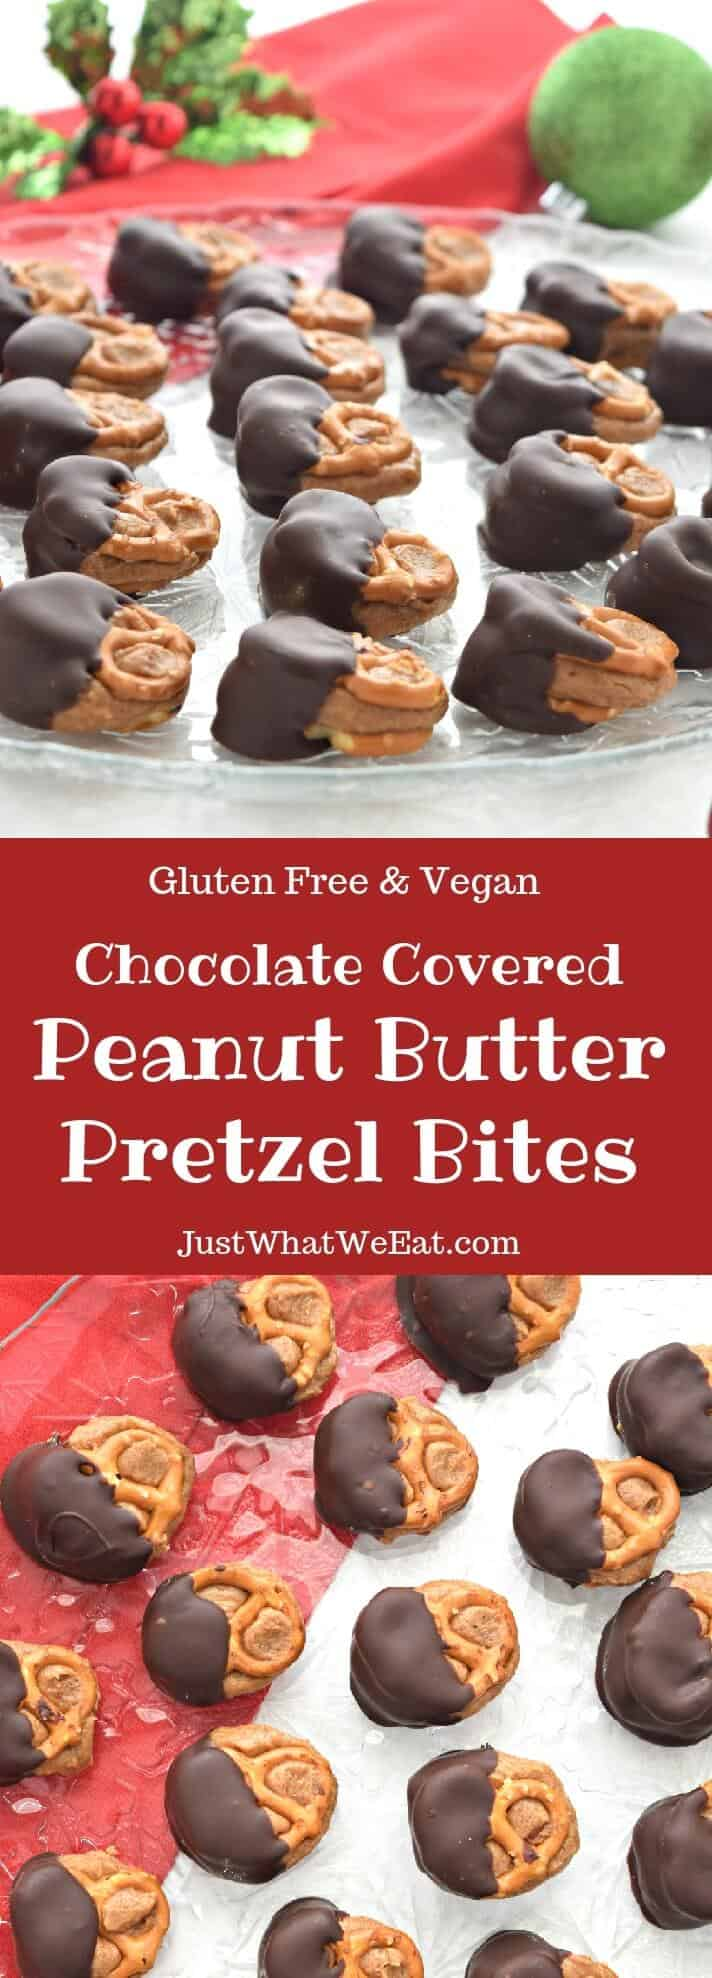 Chocolate Covered Peanut Butter Pretzel Bites - Gluten Free & Vegan